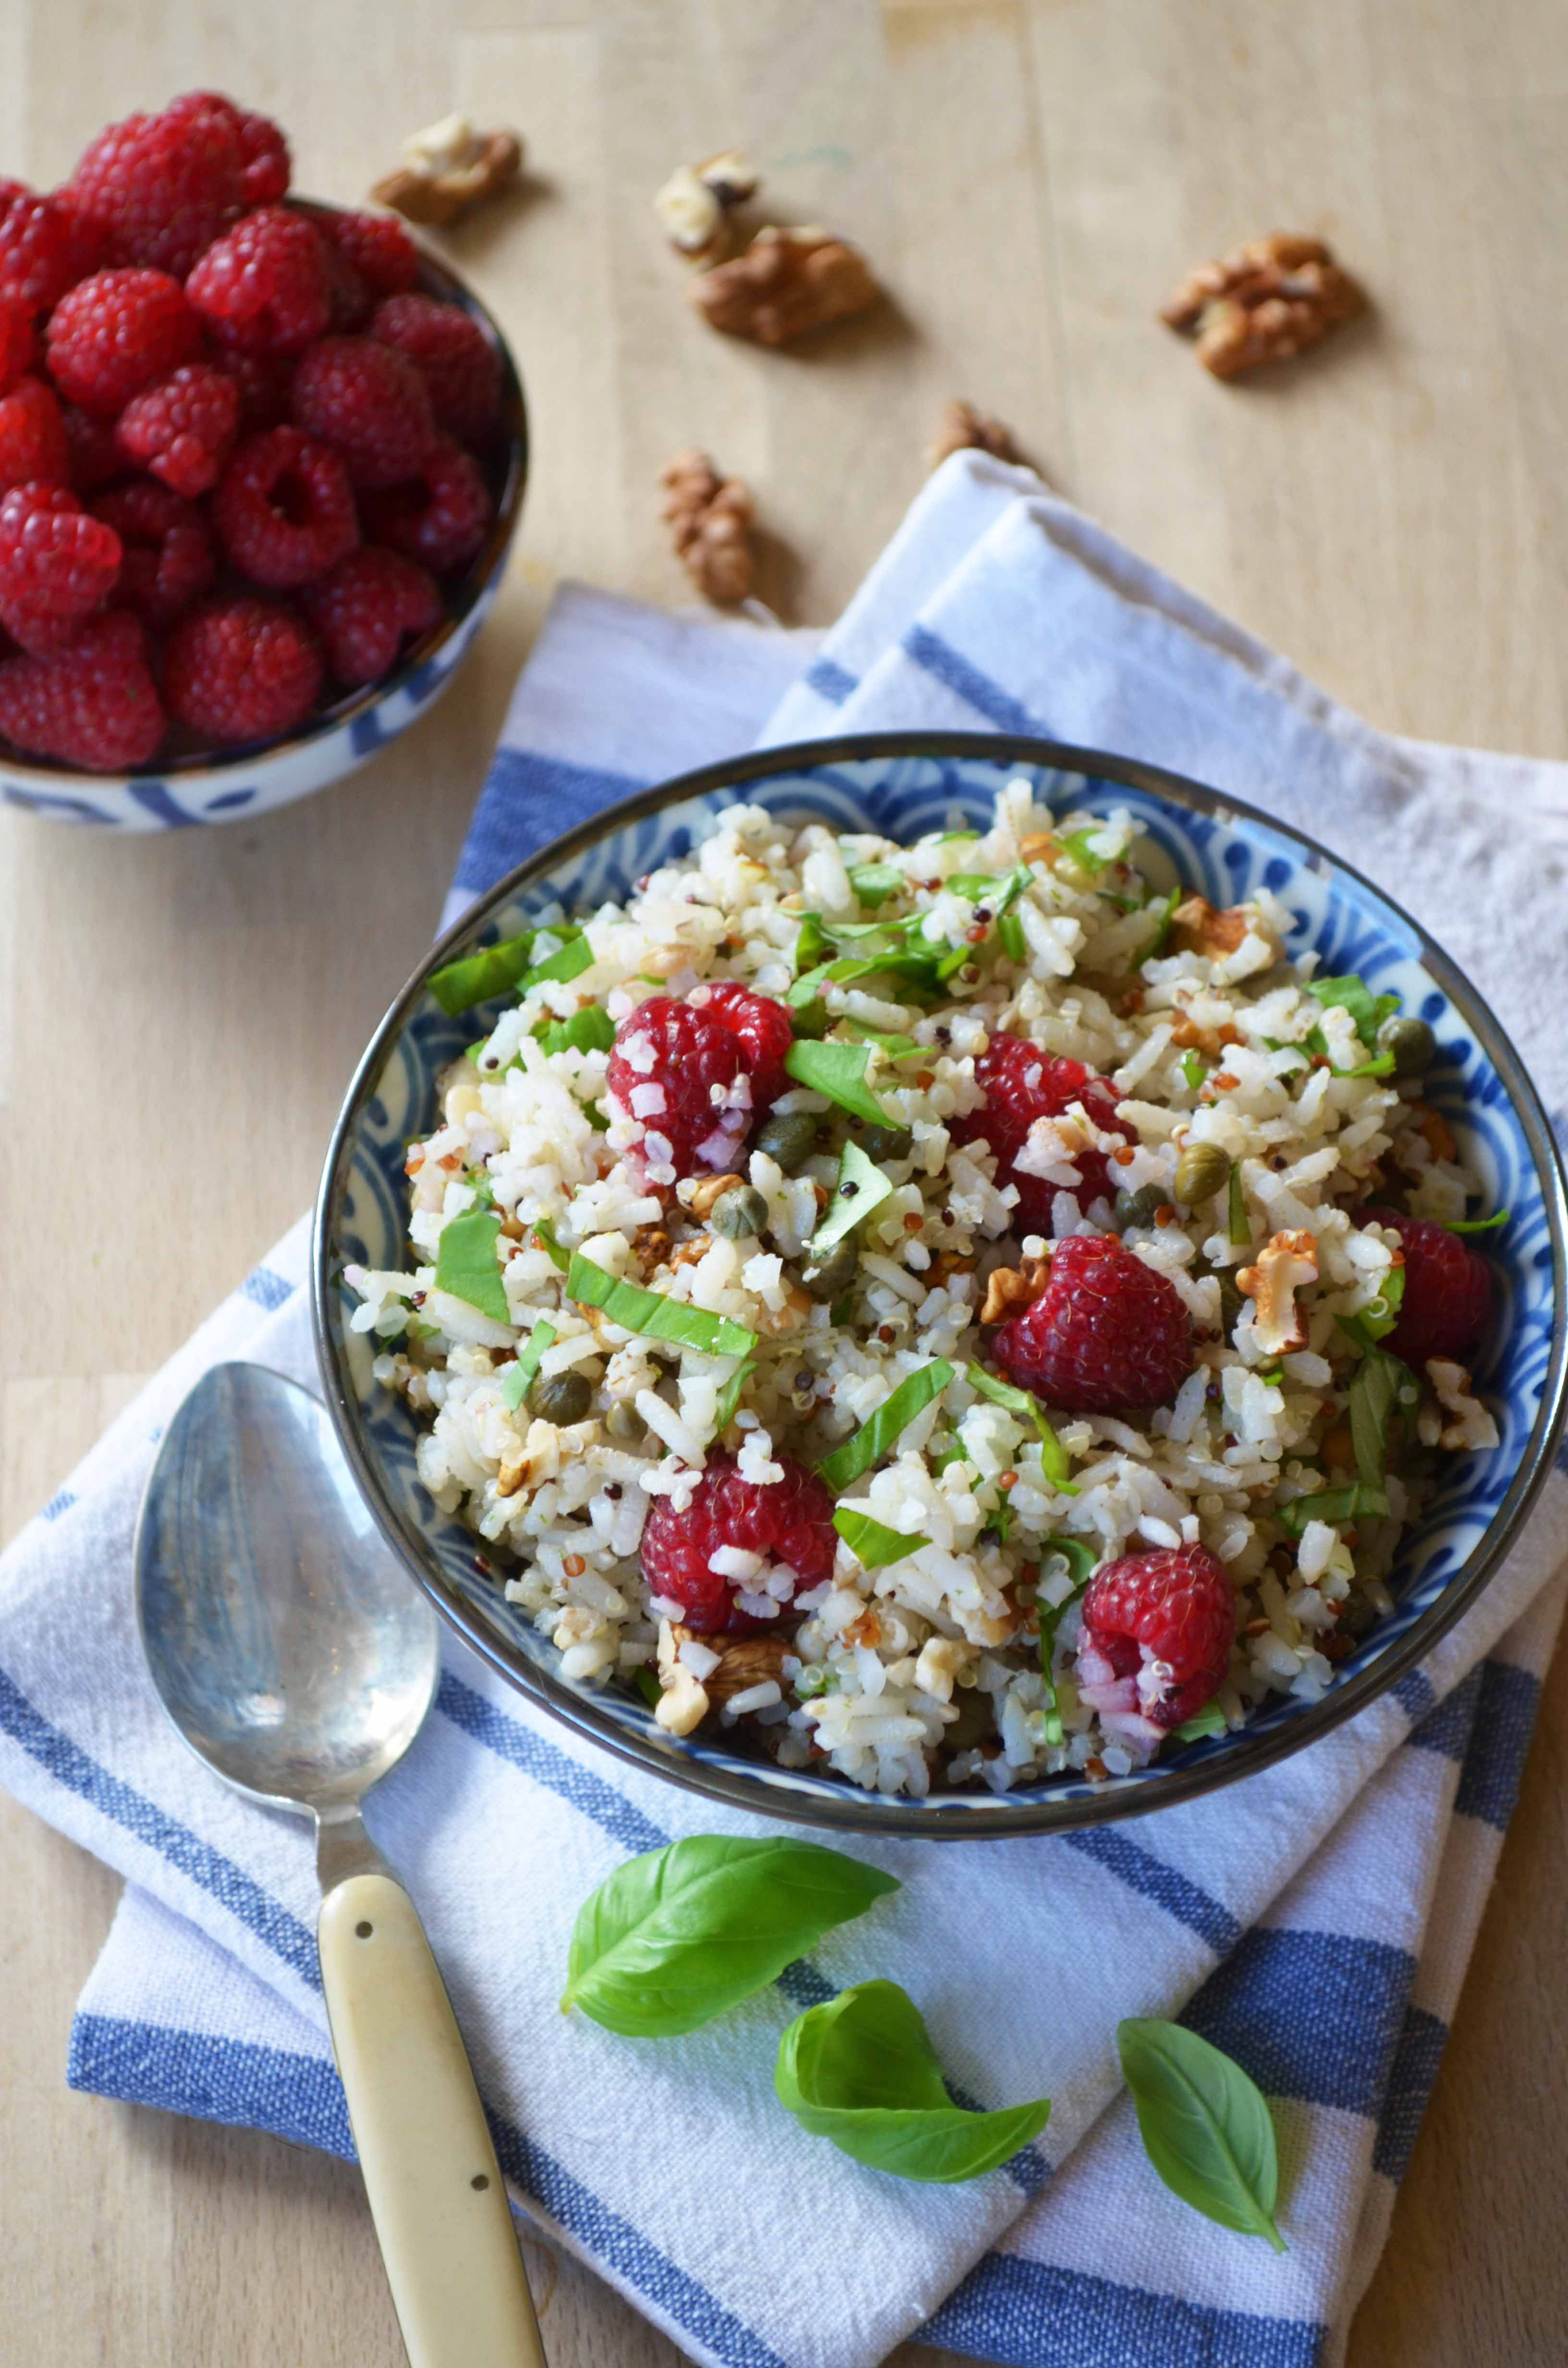 Grain Salad with Raspberries, Basil and Walnuts